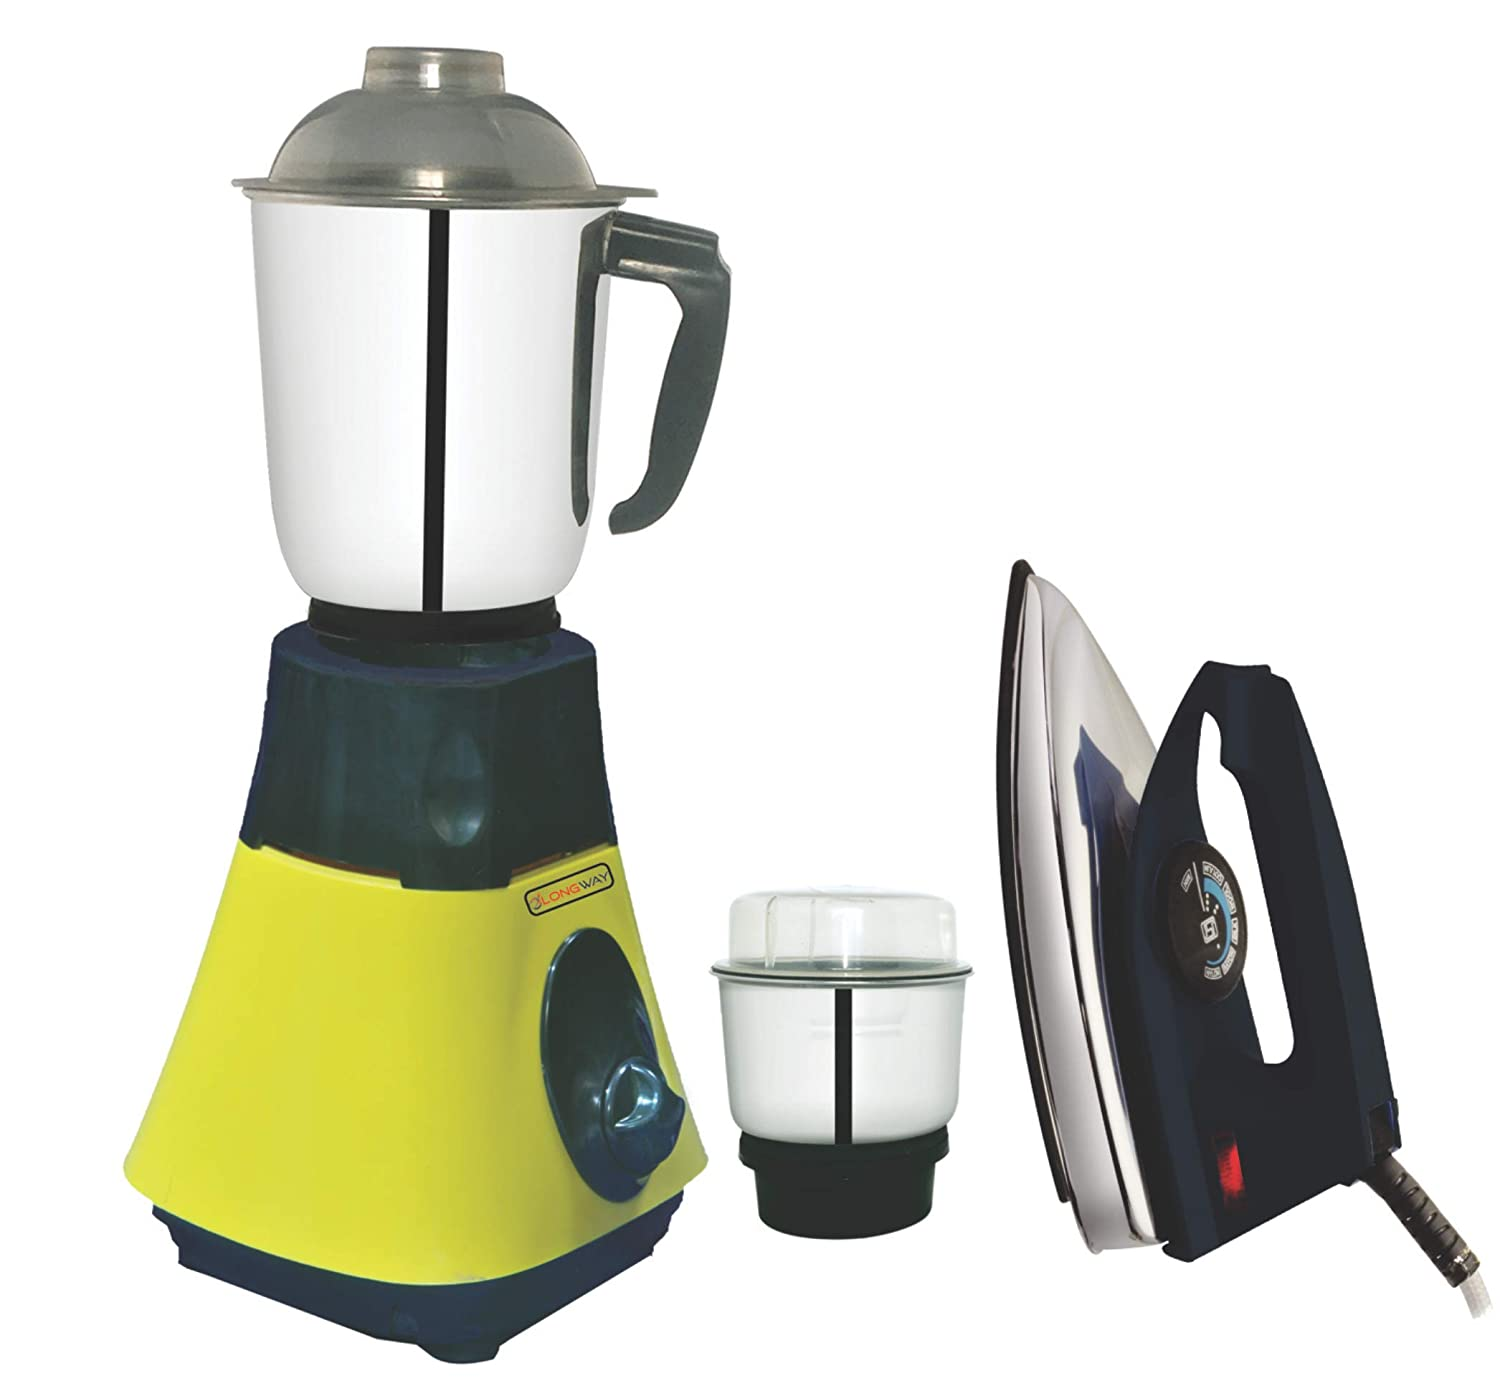 Buy Longway Jar Mixer Grinder 650w Off White Online At Low Prices In India Amazon In